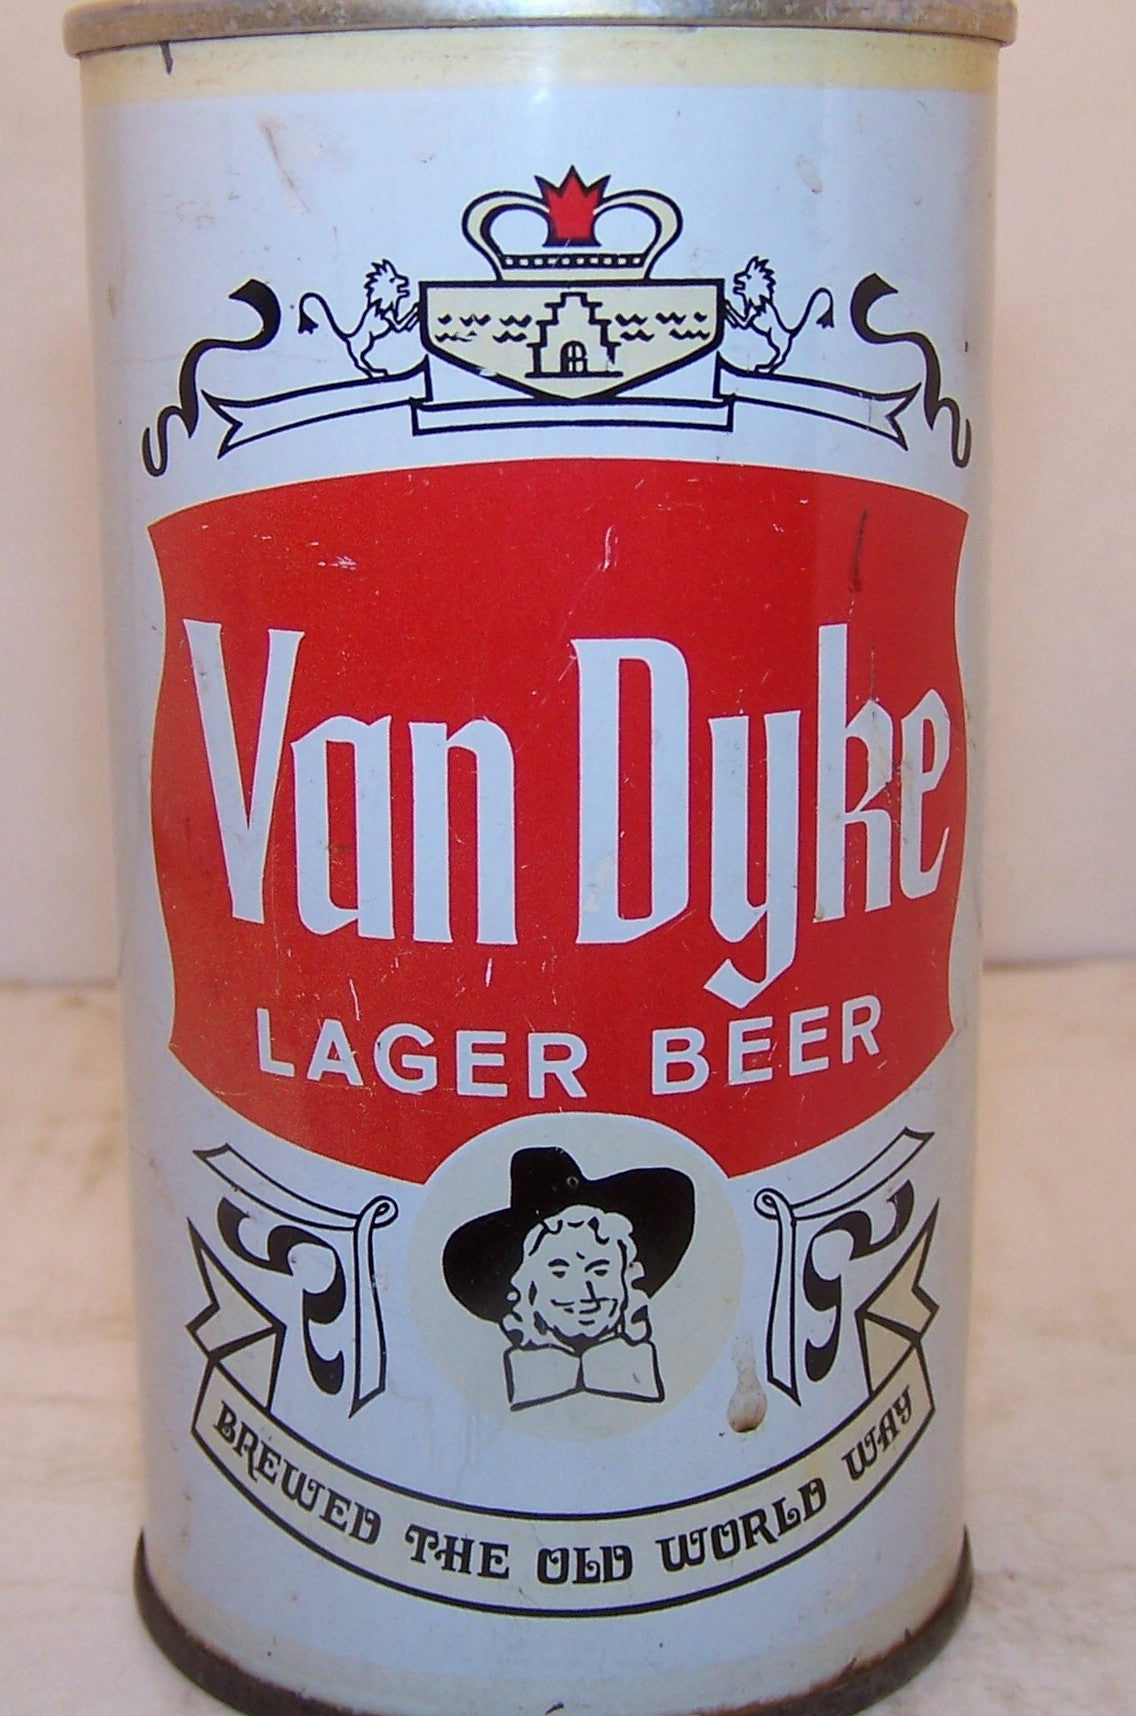 Van Dyke Lager Beer USBC II 133-8 Grade 1- Sold on 2/14/15